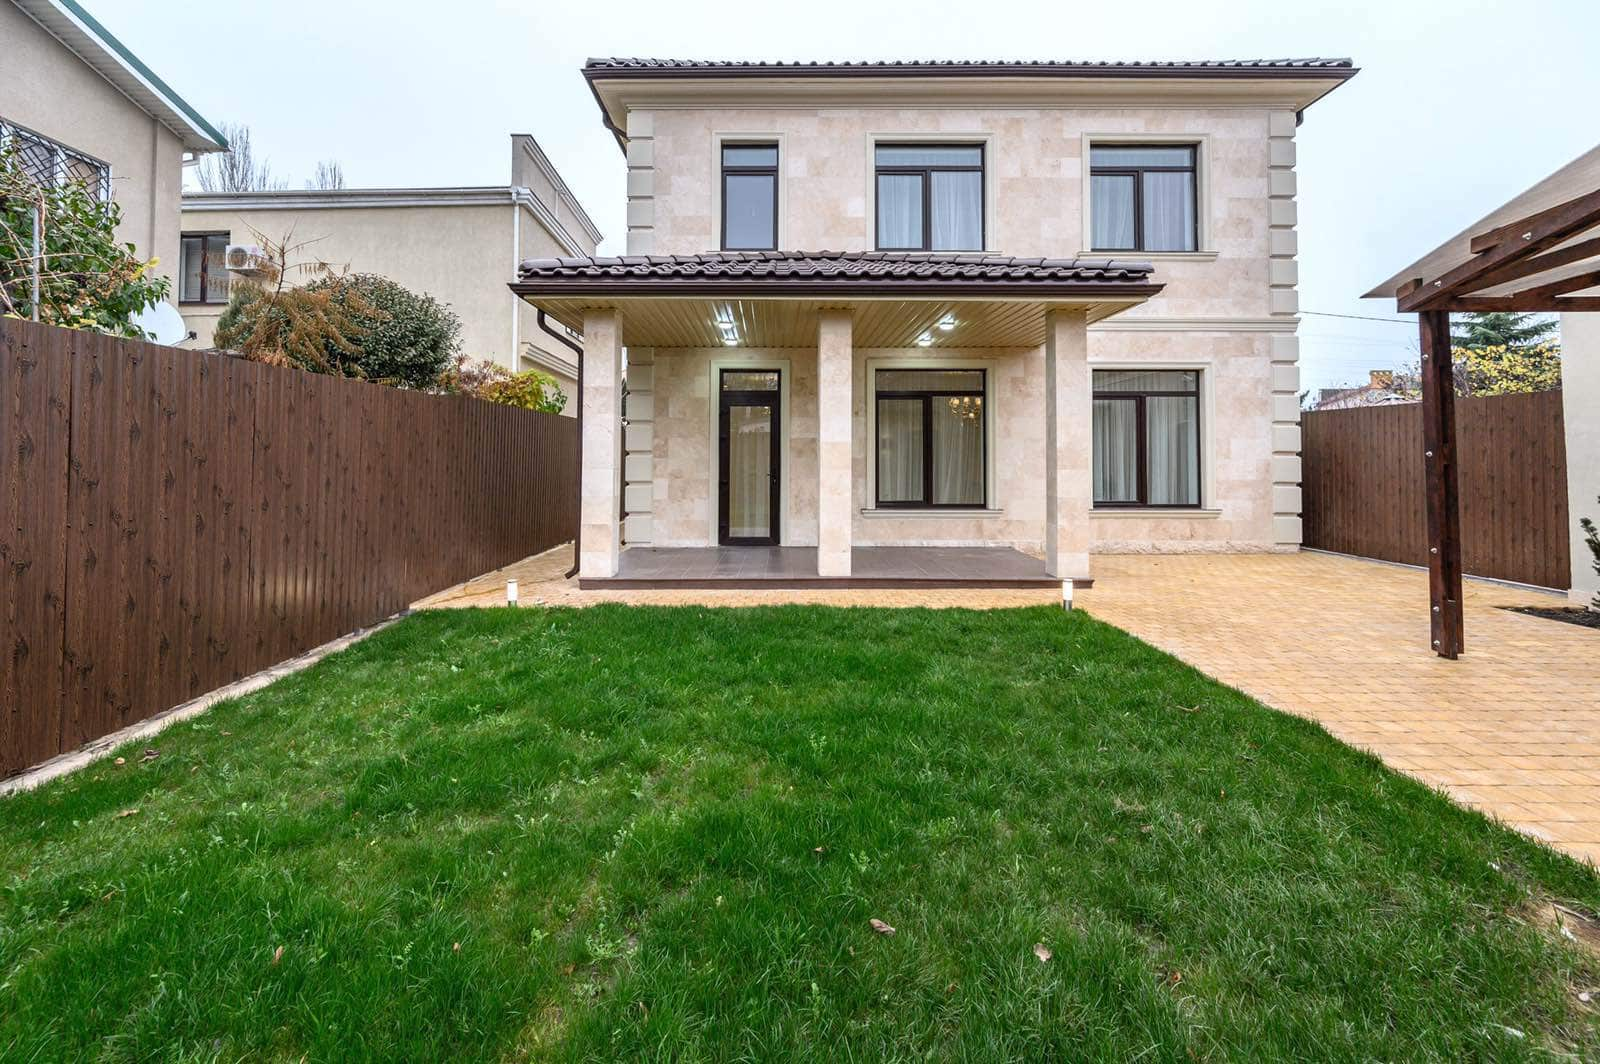 What to Consider Before Buying a New Home. Great lawn and casual facade of the light finished house with the porch in columns